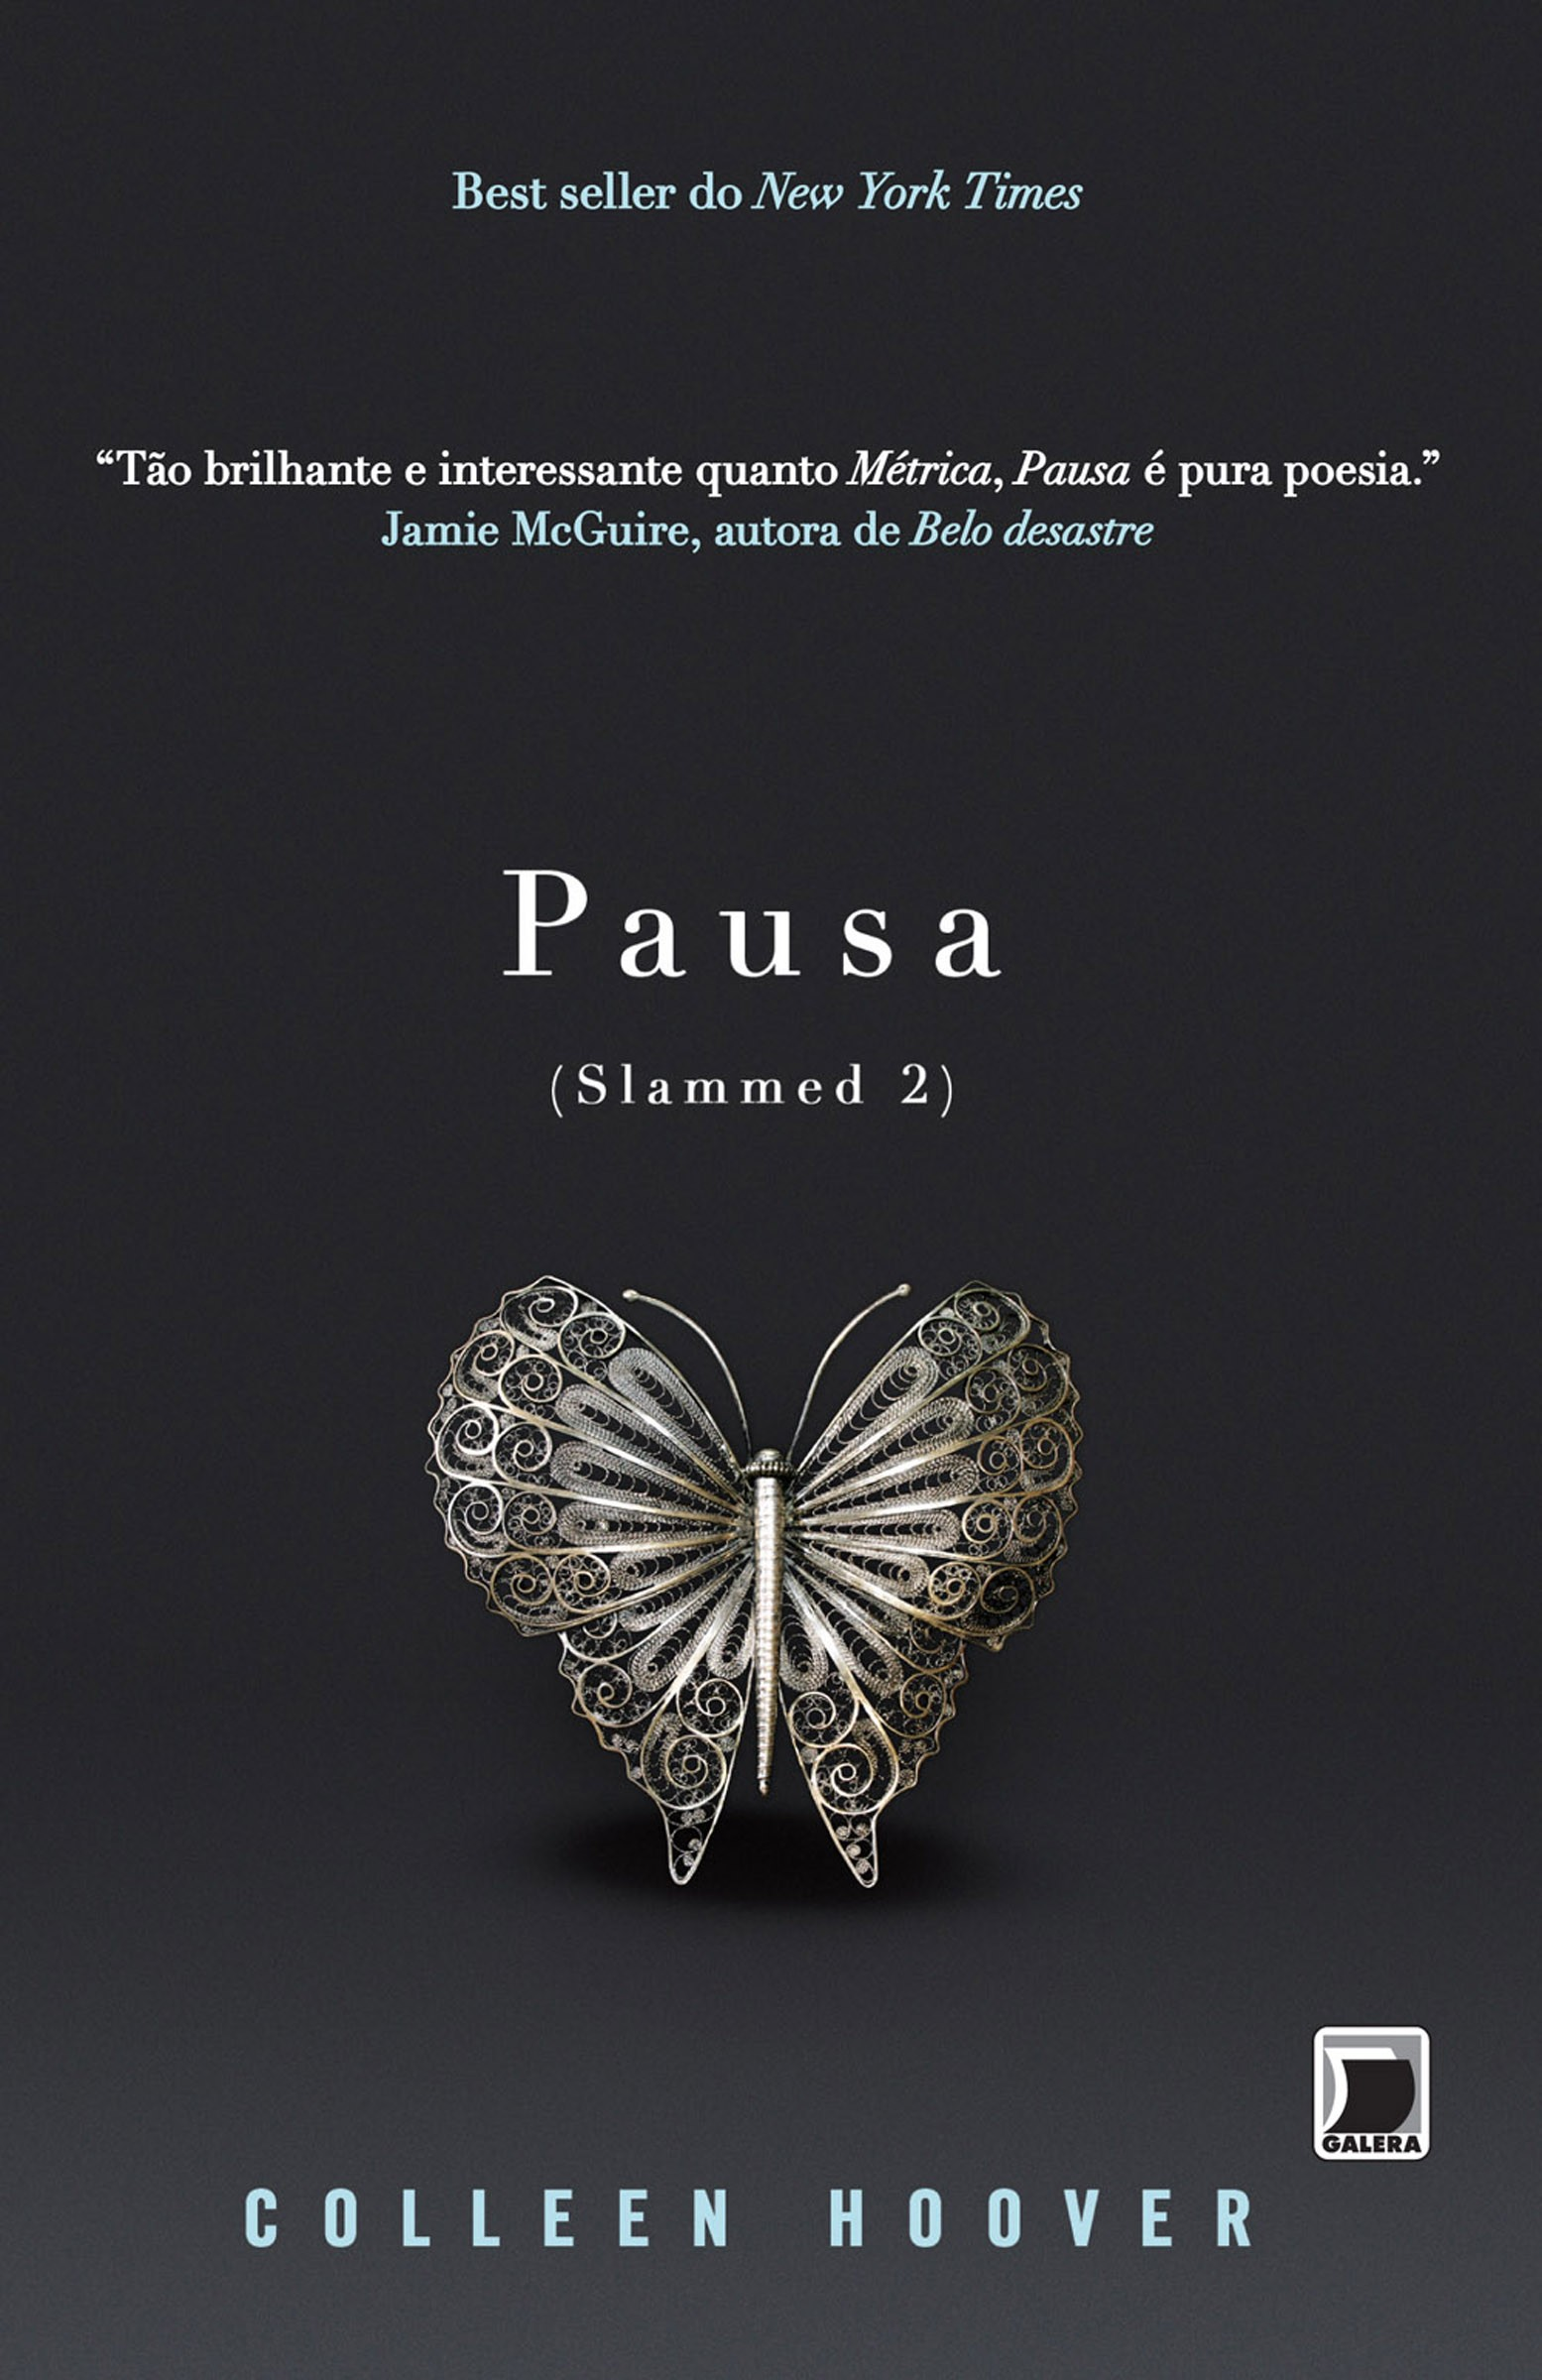 Colleen Hoover - Pausa